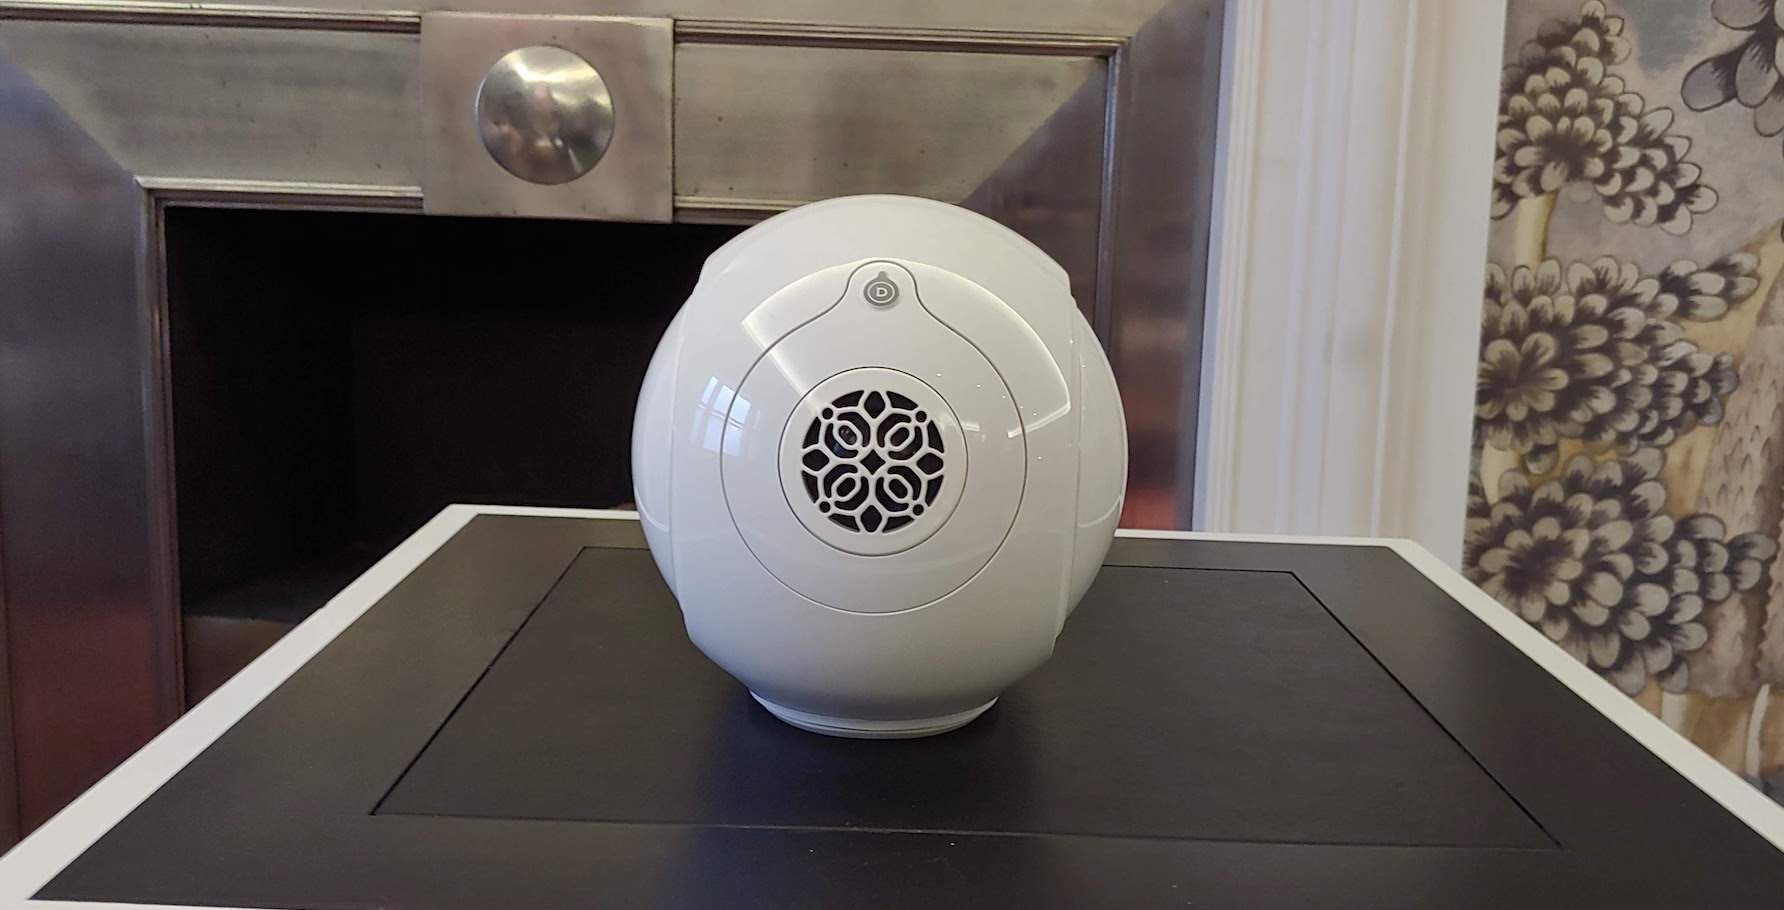 First look: Devialet Phantom Reactor is a bass rumbling speaker in a tiny package